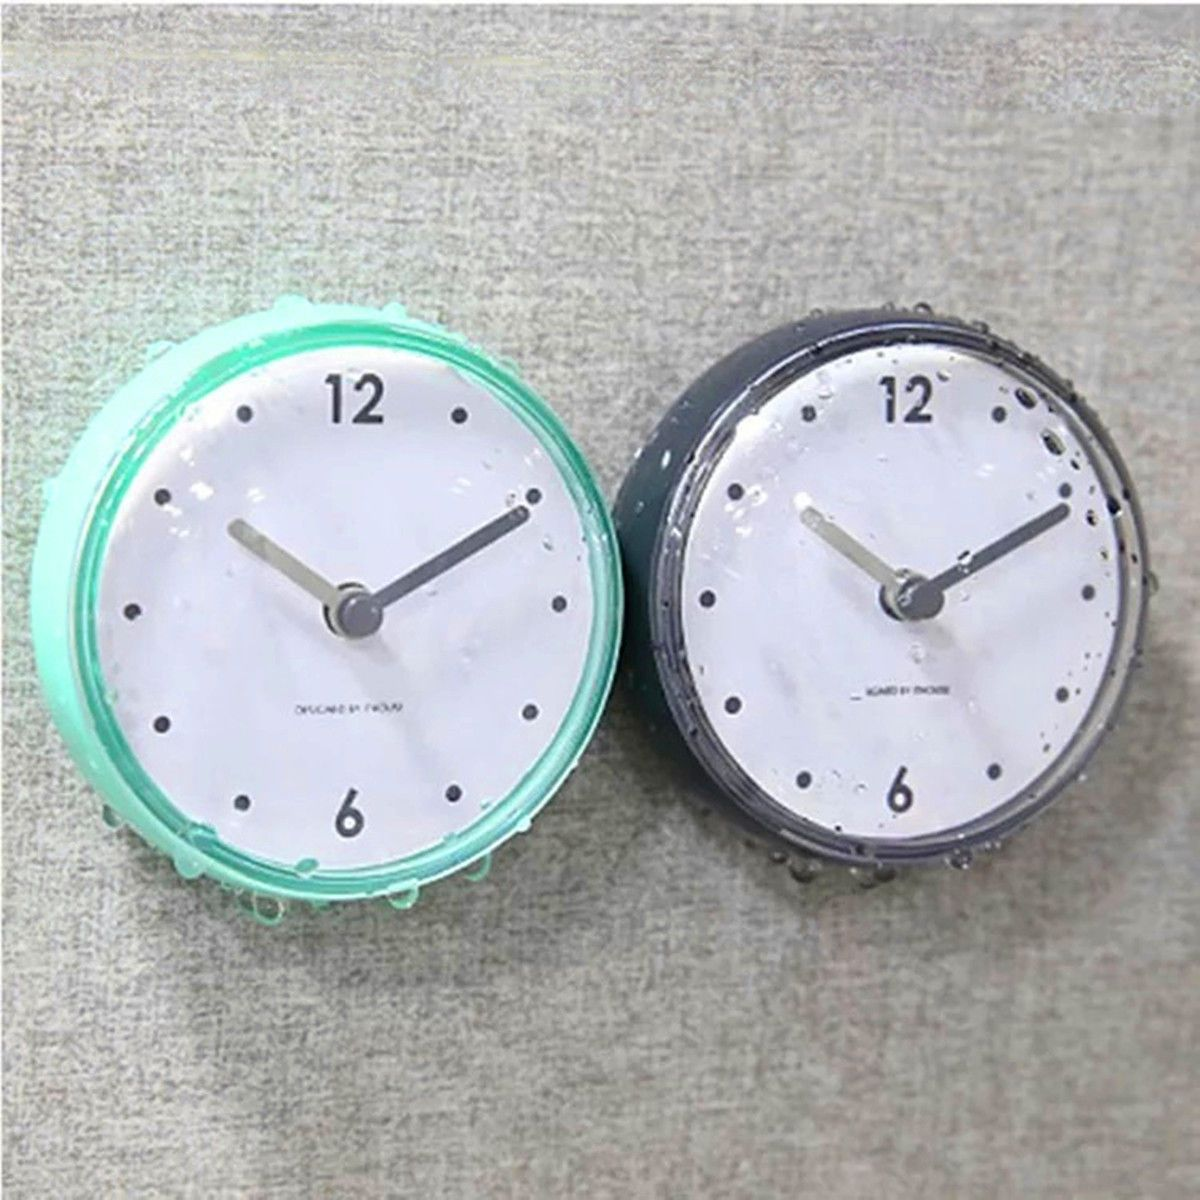 Waterproof Kitchen Bathroom Bath Shower Clock Suction Cup Sucker